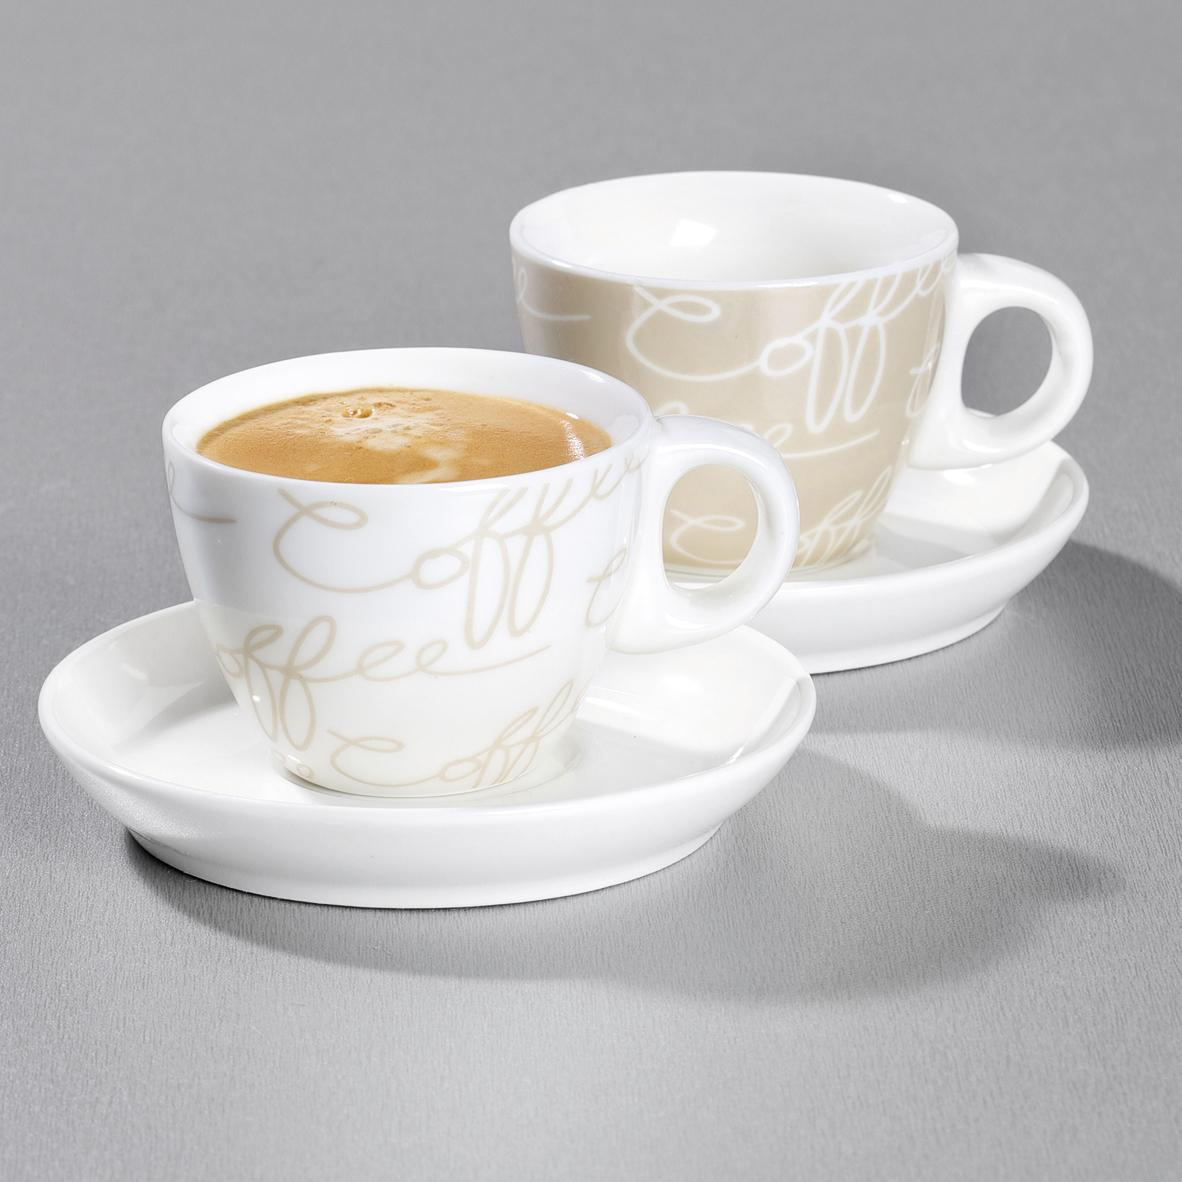 ritzenhoff breker espresso set cornello 4 teilig creme 80ml k che haushalt. Black Bedroom Furniture Sets. Home Design Ideas